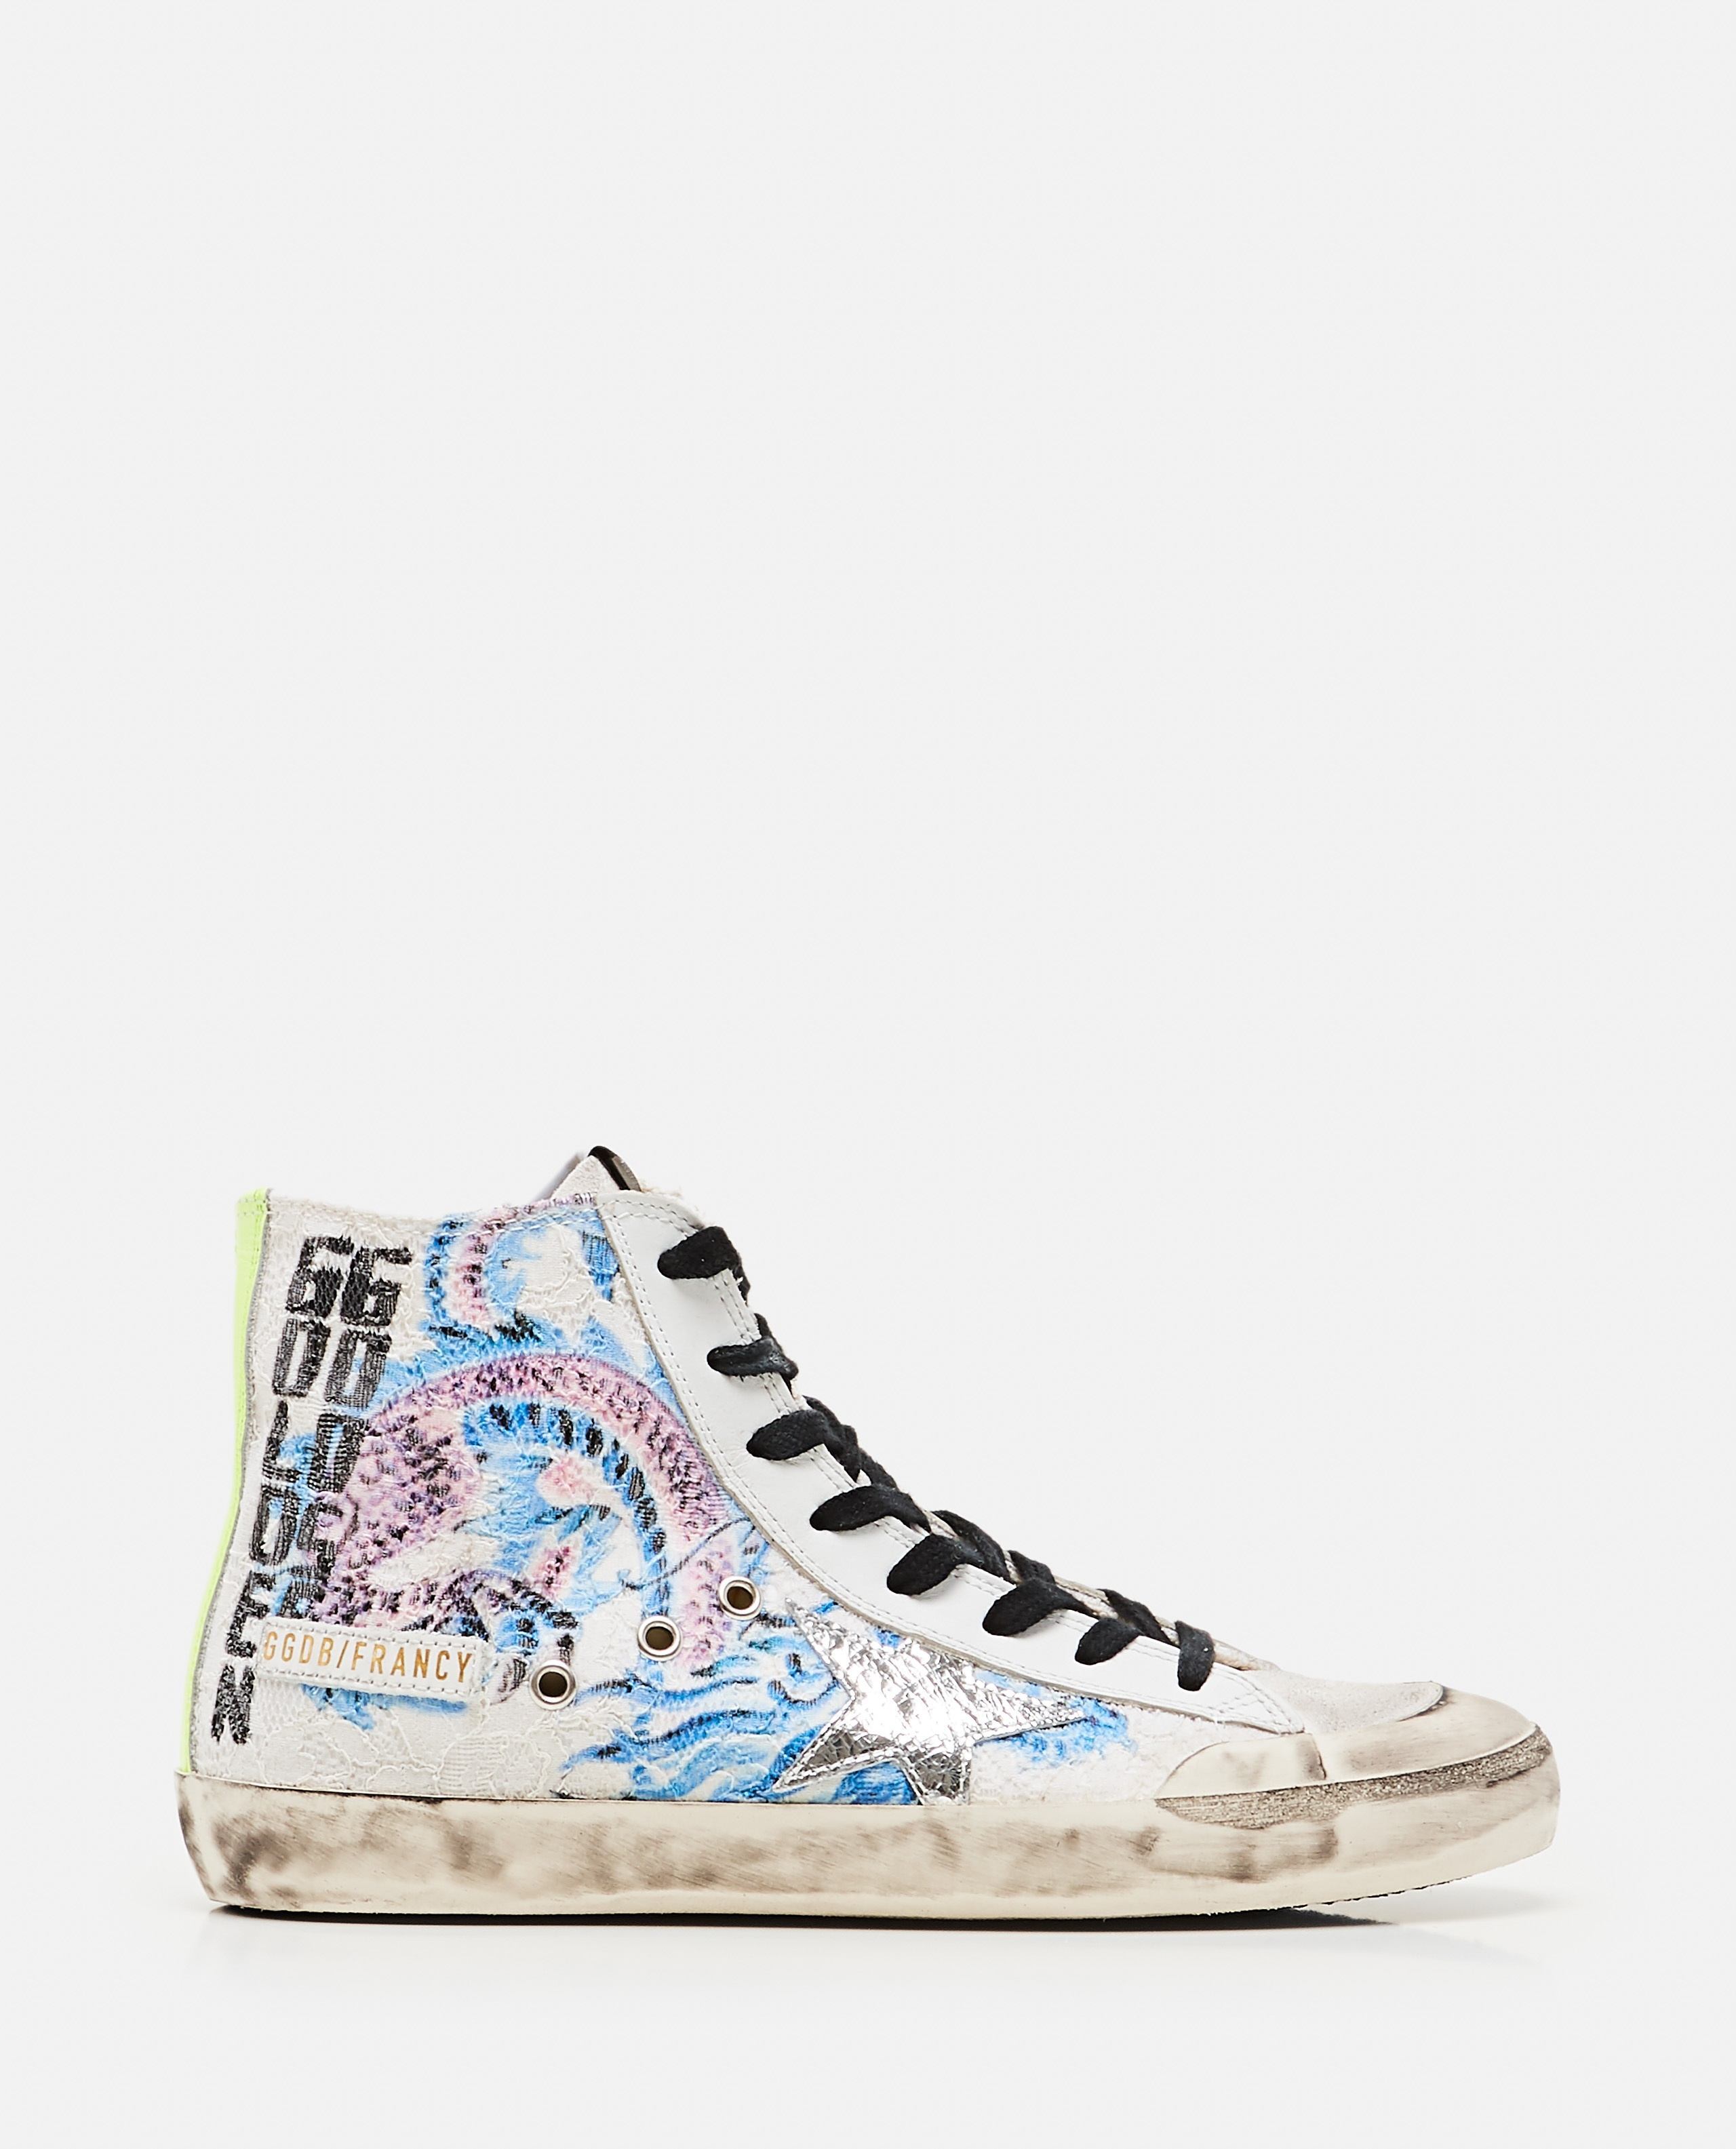 Francy Lace sneakers with Japanese Crackle` Star print Donna Golden Goose 000286860042310 1